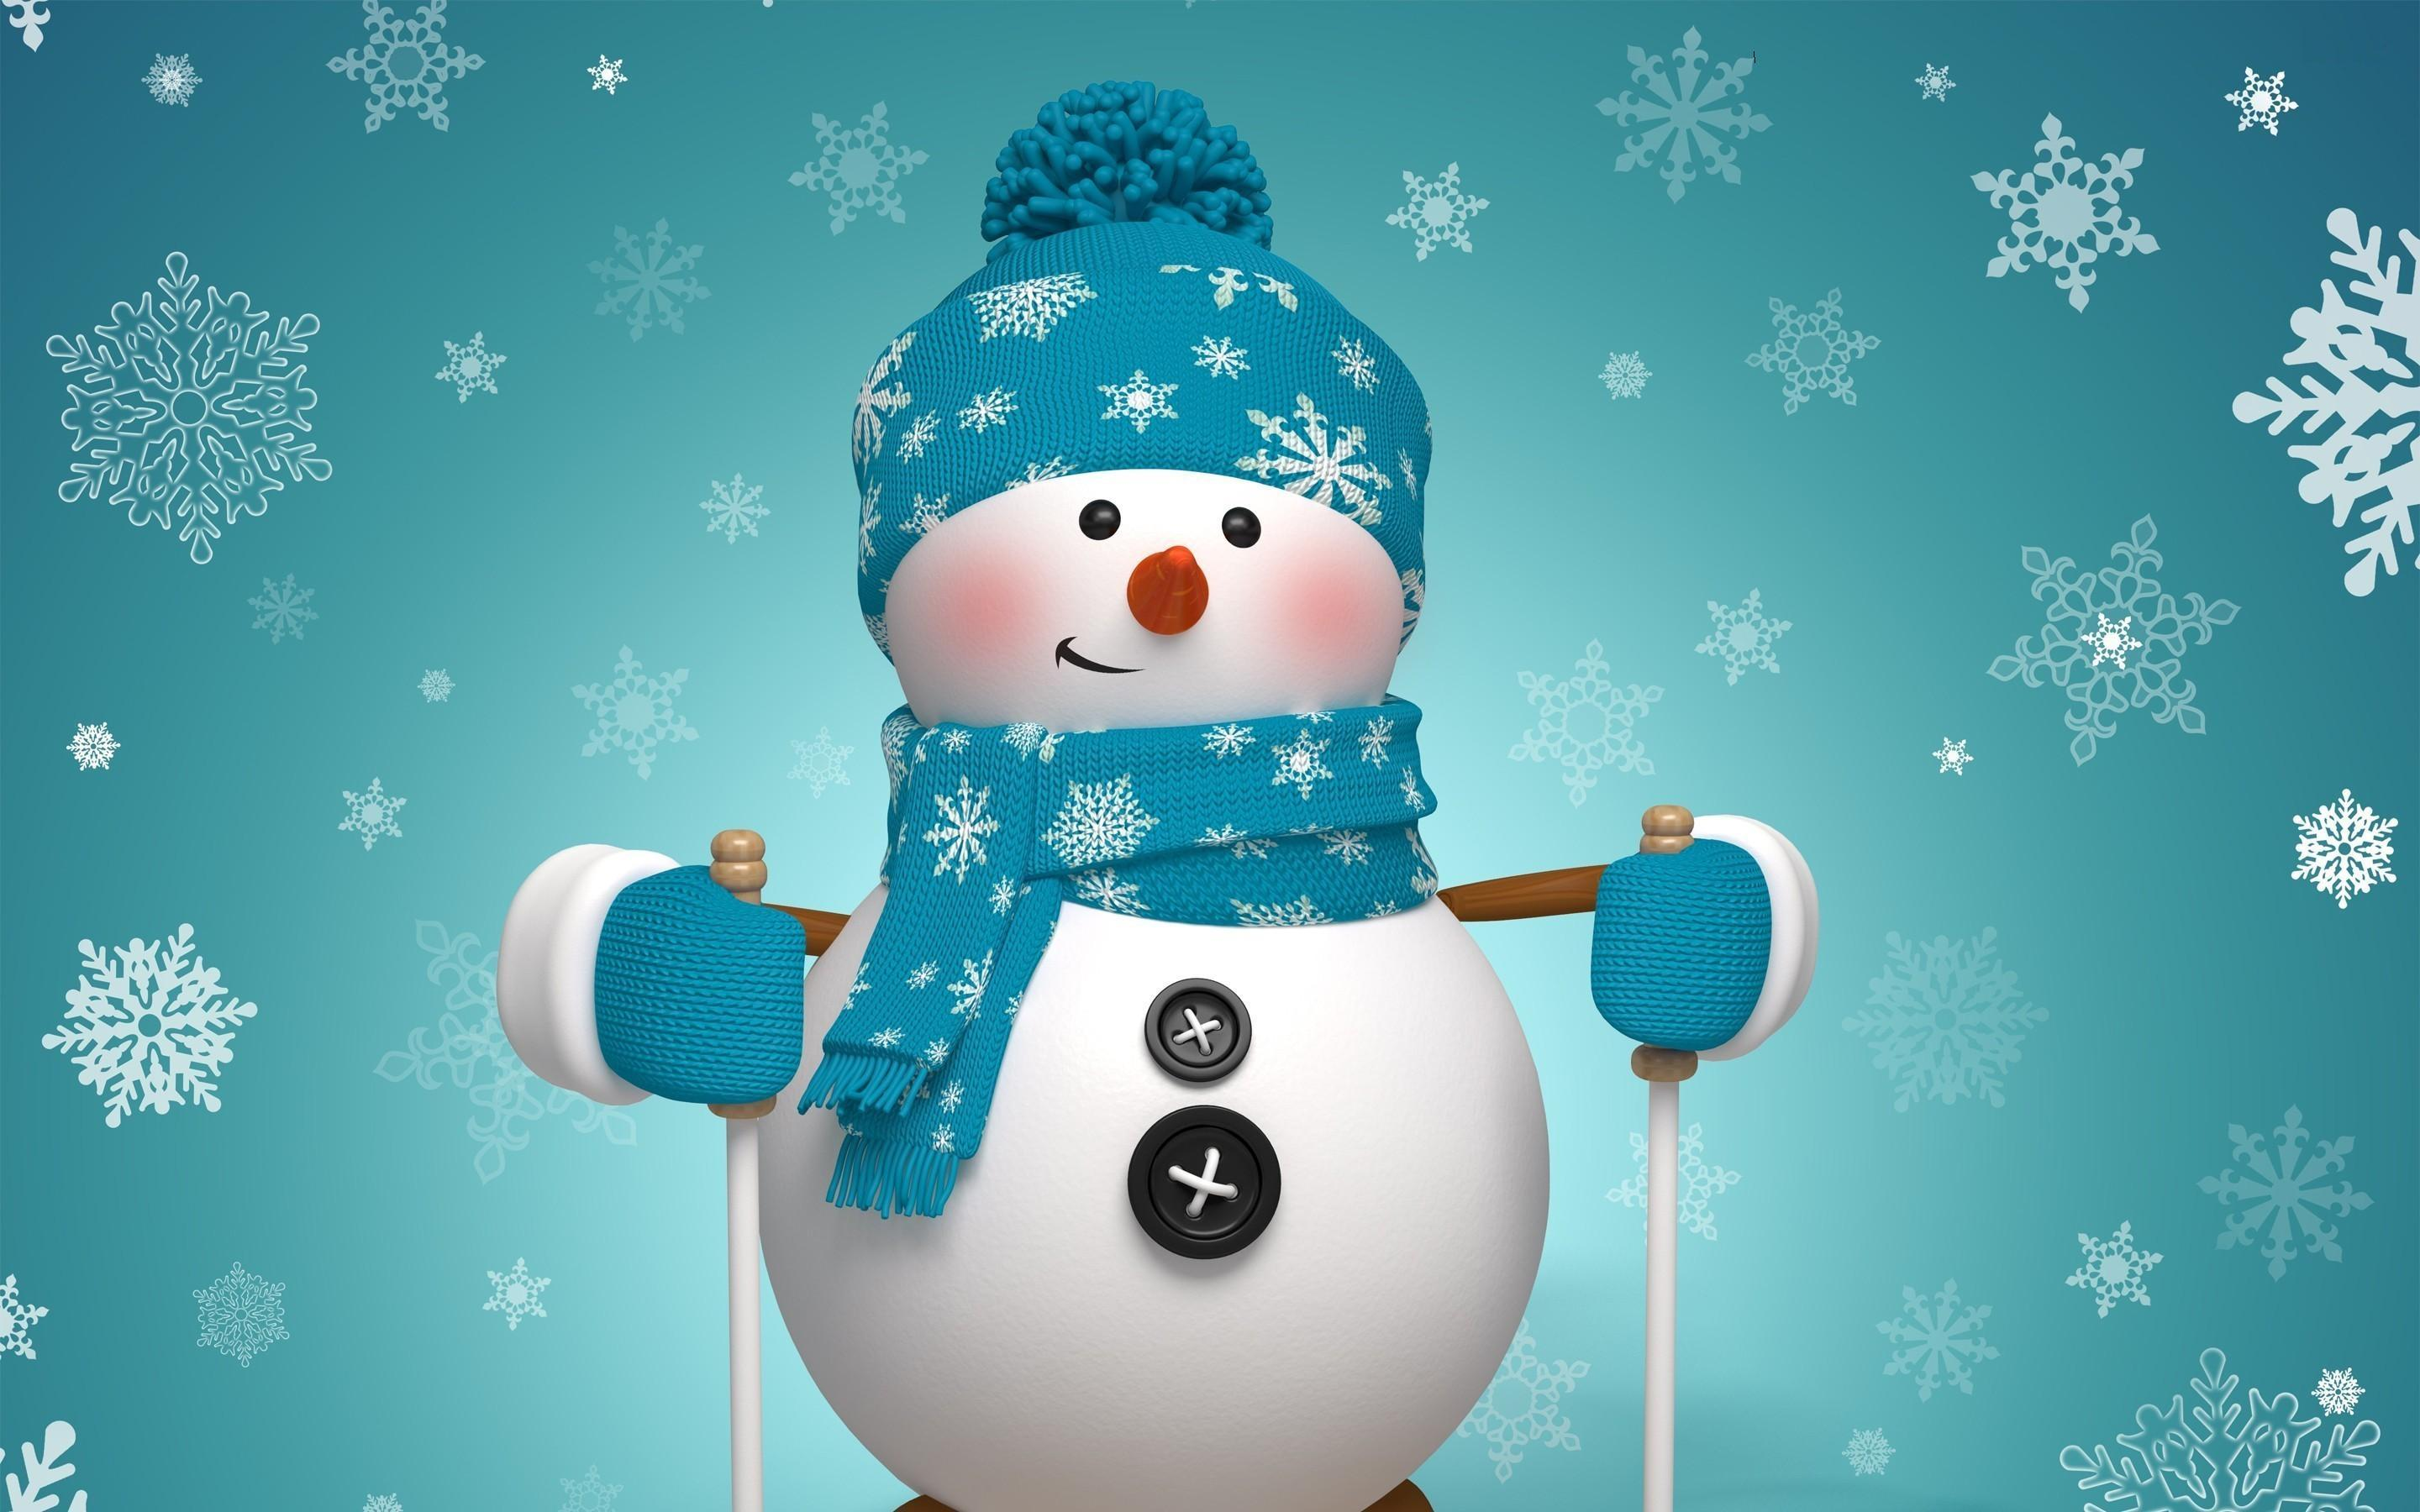 Free snowman wallpapers wallpaper cave for Pretty christmas pics